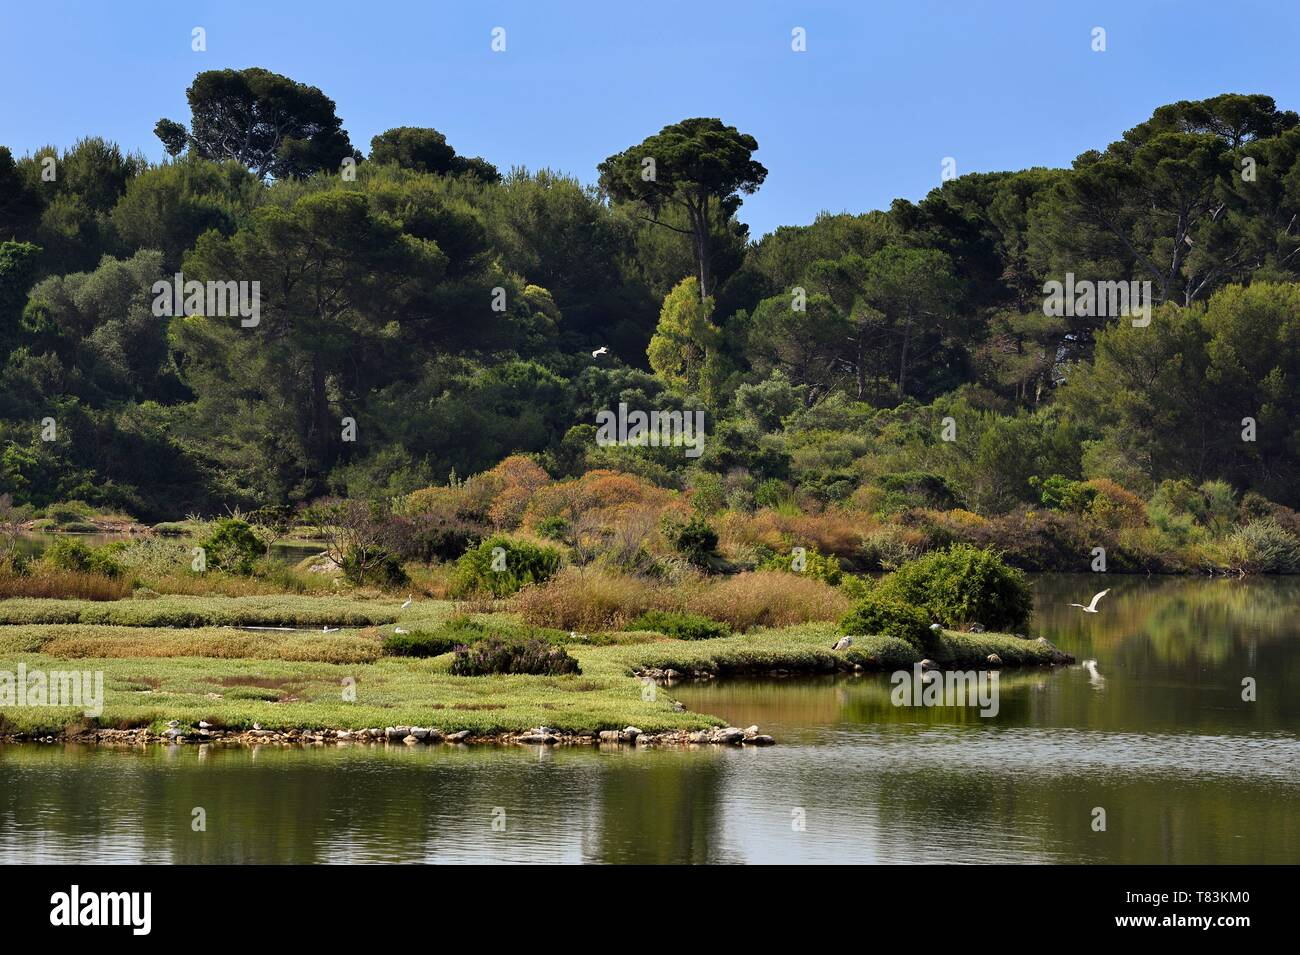 France, Alpes Maritimes, Lerins Islands, Sainte Marguerite island, domanial biological reserve, Bateguier pond, common tern (Sterna hirundo) and seagulls Stock Photo